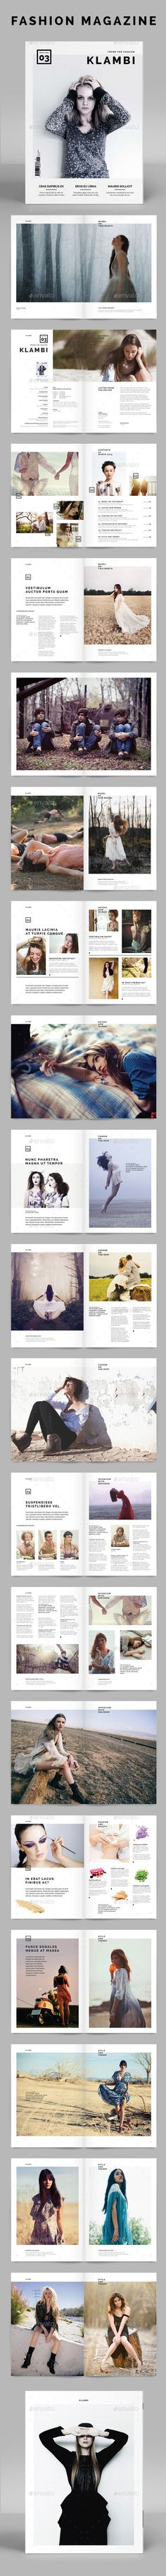 Ideas For Fashion Magazine Layout Design Editorial Graphic Design Magazine, Magazine Design Inspiration, Magazine Layout Design, Layout Inspiration, Graphic Design Inspiration, Ideas Magazine, Design Poster, Book Design, Cover Design